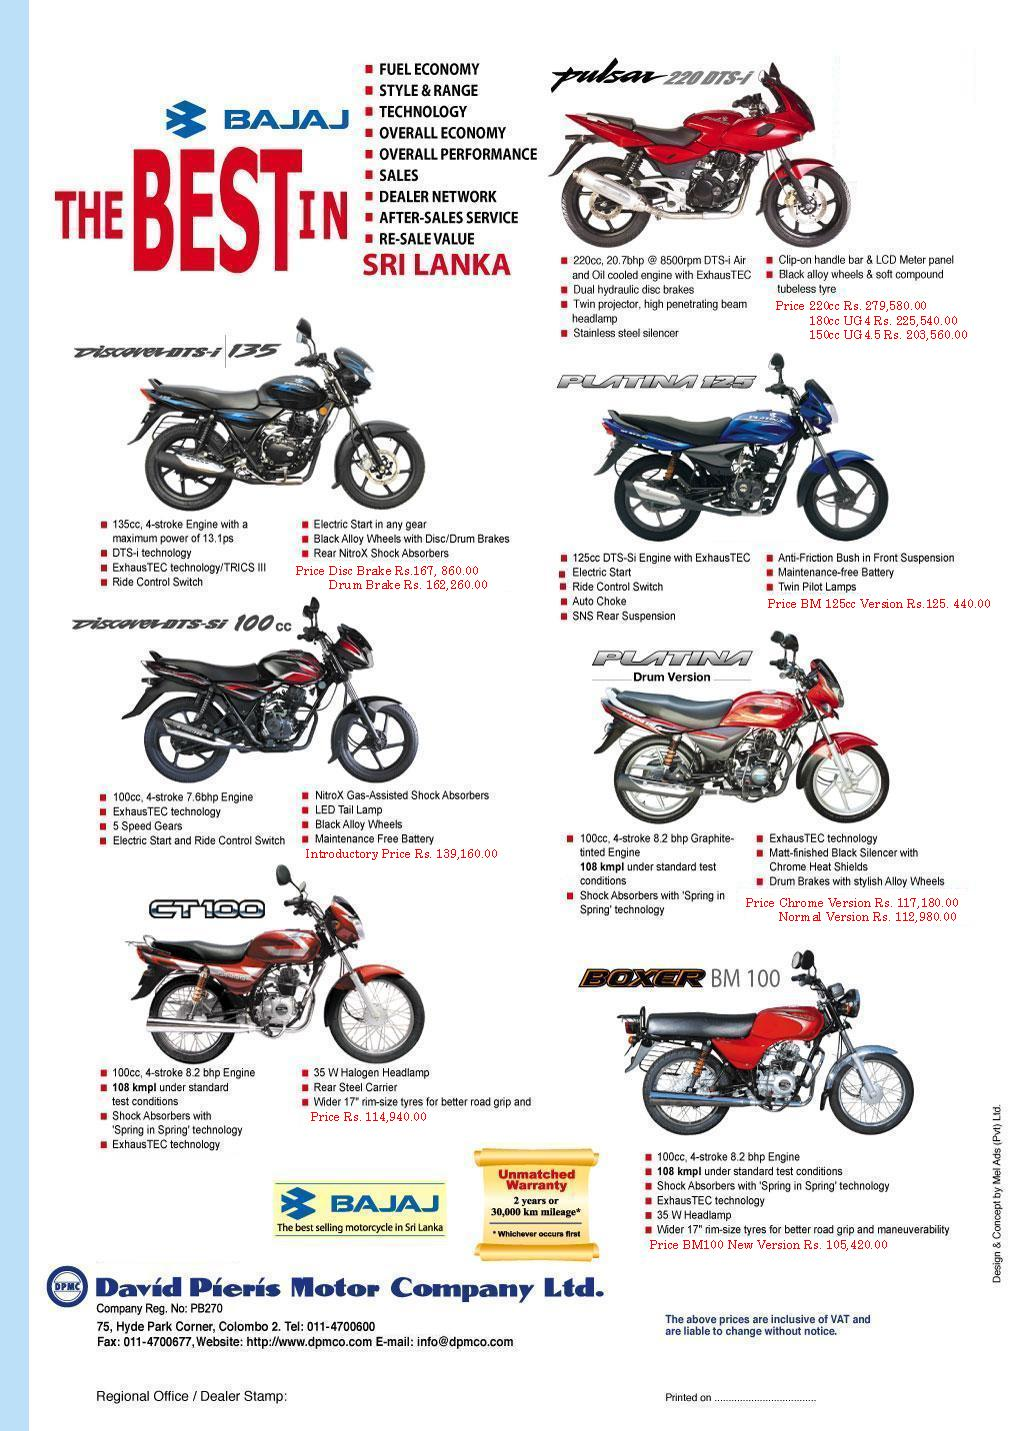 Bajaj Bike Price List Sri Lanka 2010 July Lanka Automotives